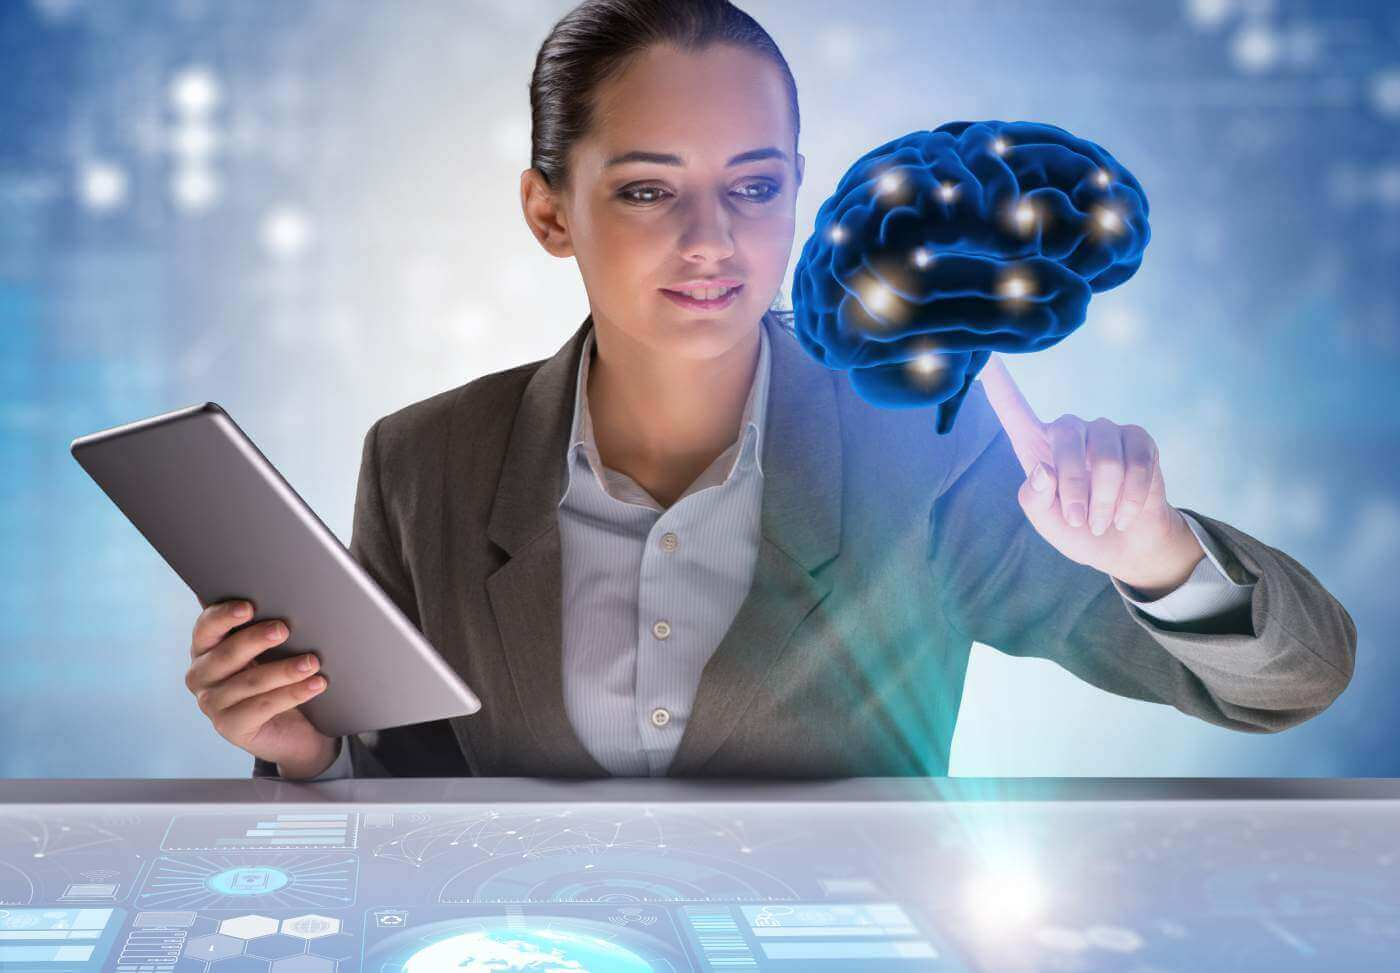 Businesswoman in artificial intelligence